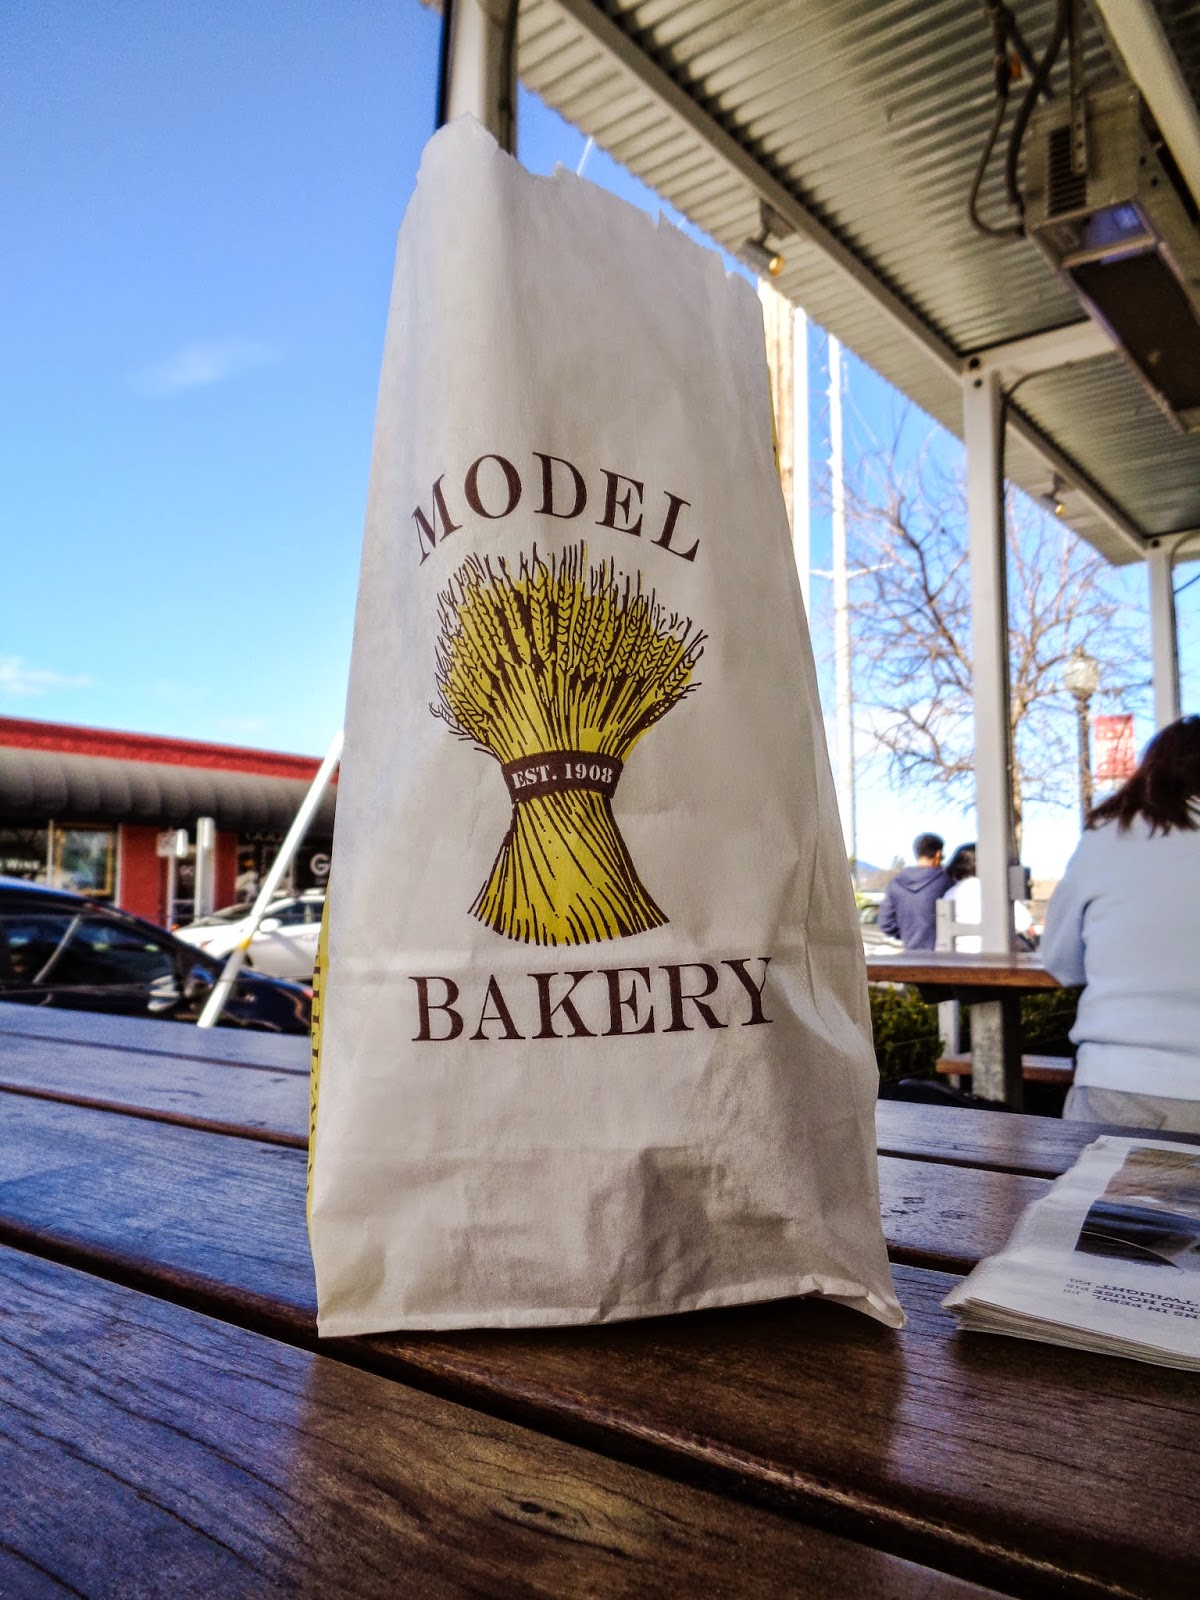 Model Bakery in Napa, Parrish The Thought